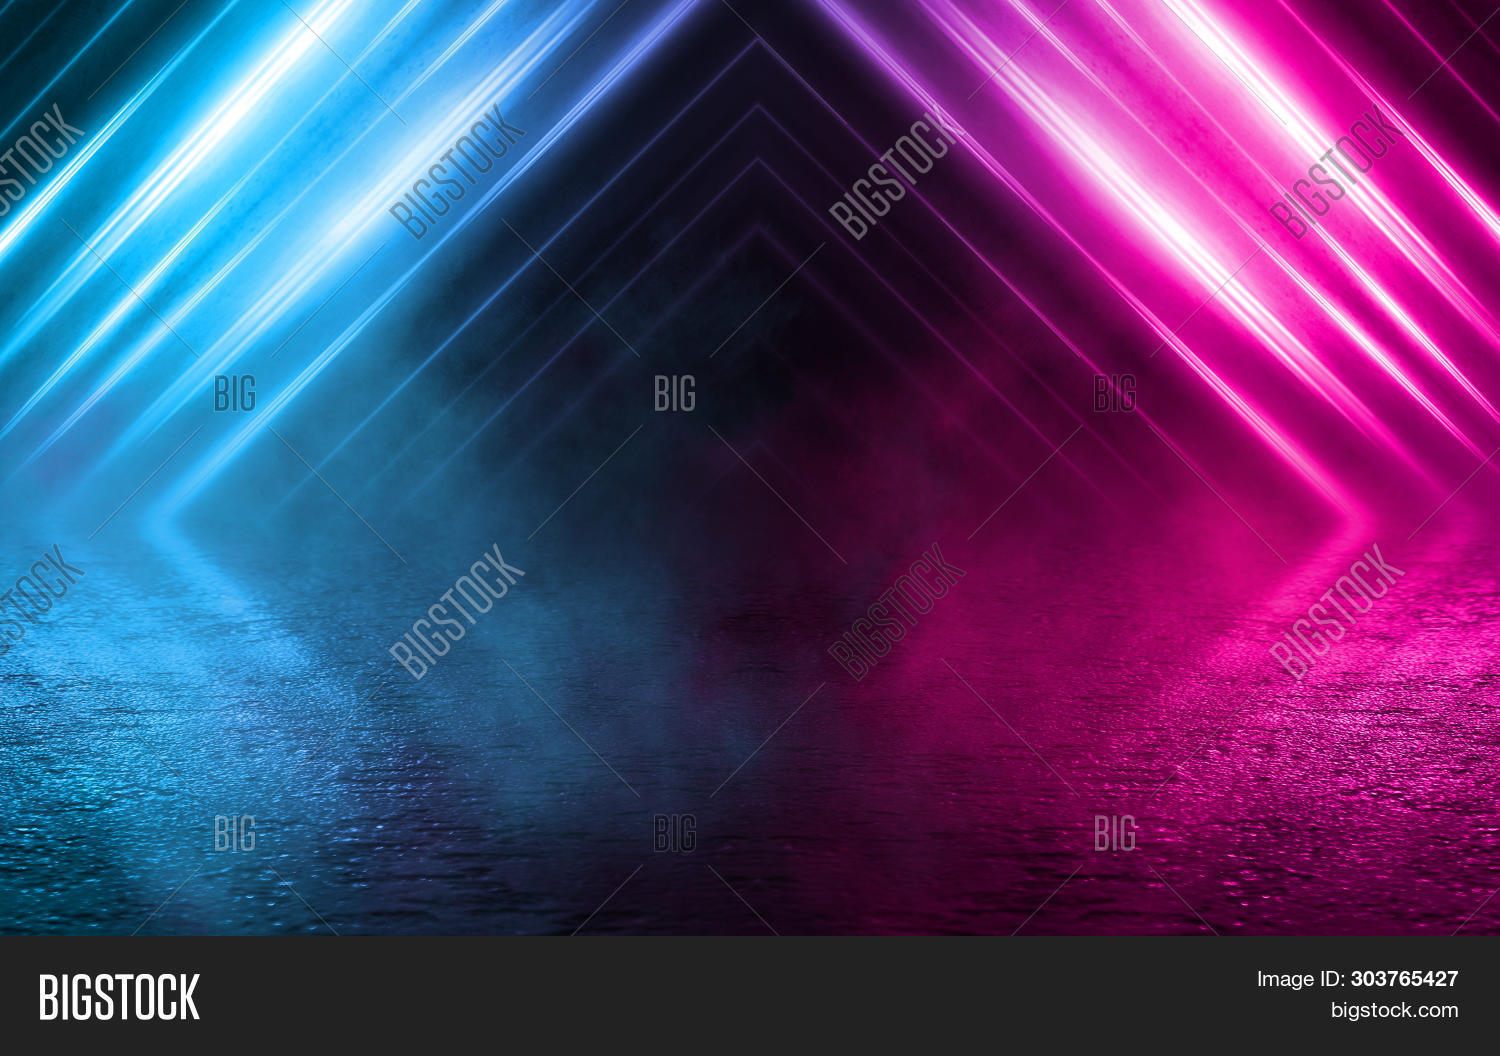 3d,abstract,asphalt,background,basement,blue,bright,club,concrete,corridor,dark,disco,effect,empty,energy,figure,flash,floor,fog,fractal,futuristic,glow,glowing,hall,horror,illuminated,illustration,lantern,light,neon,night,pavement,pink,purple,ray,reflection,road,room,scary,scene,shine,smog,smoke,space,square,street,strip,studio,theater,wall